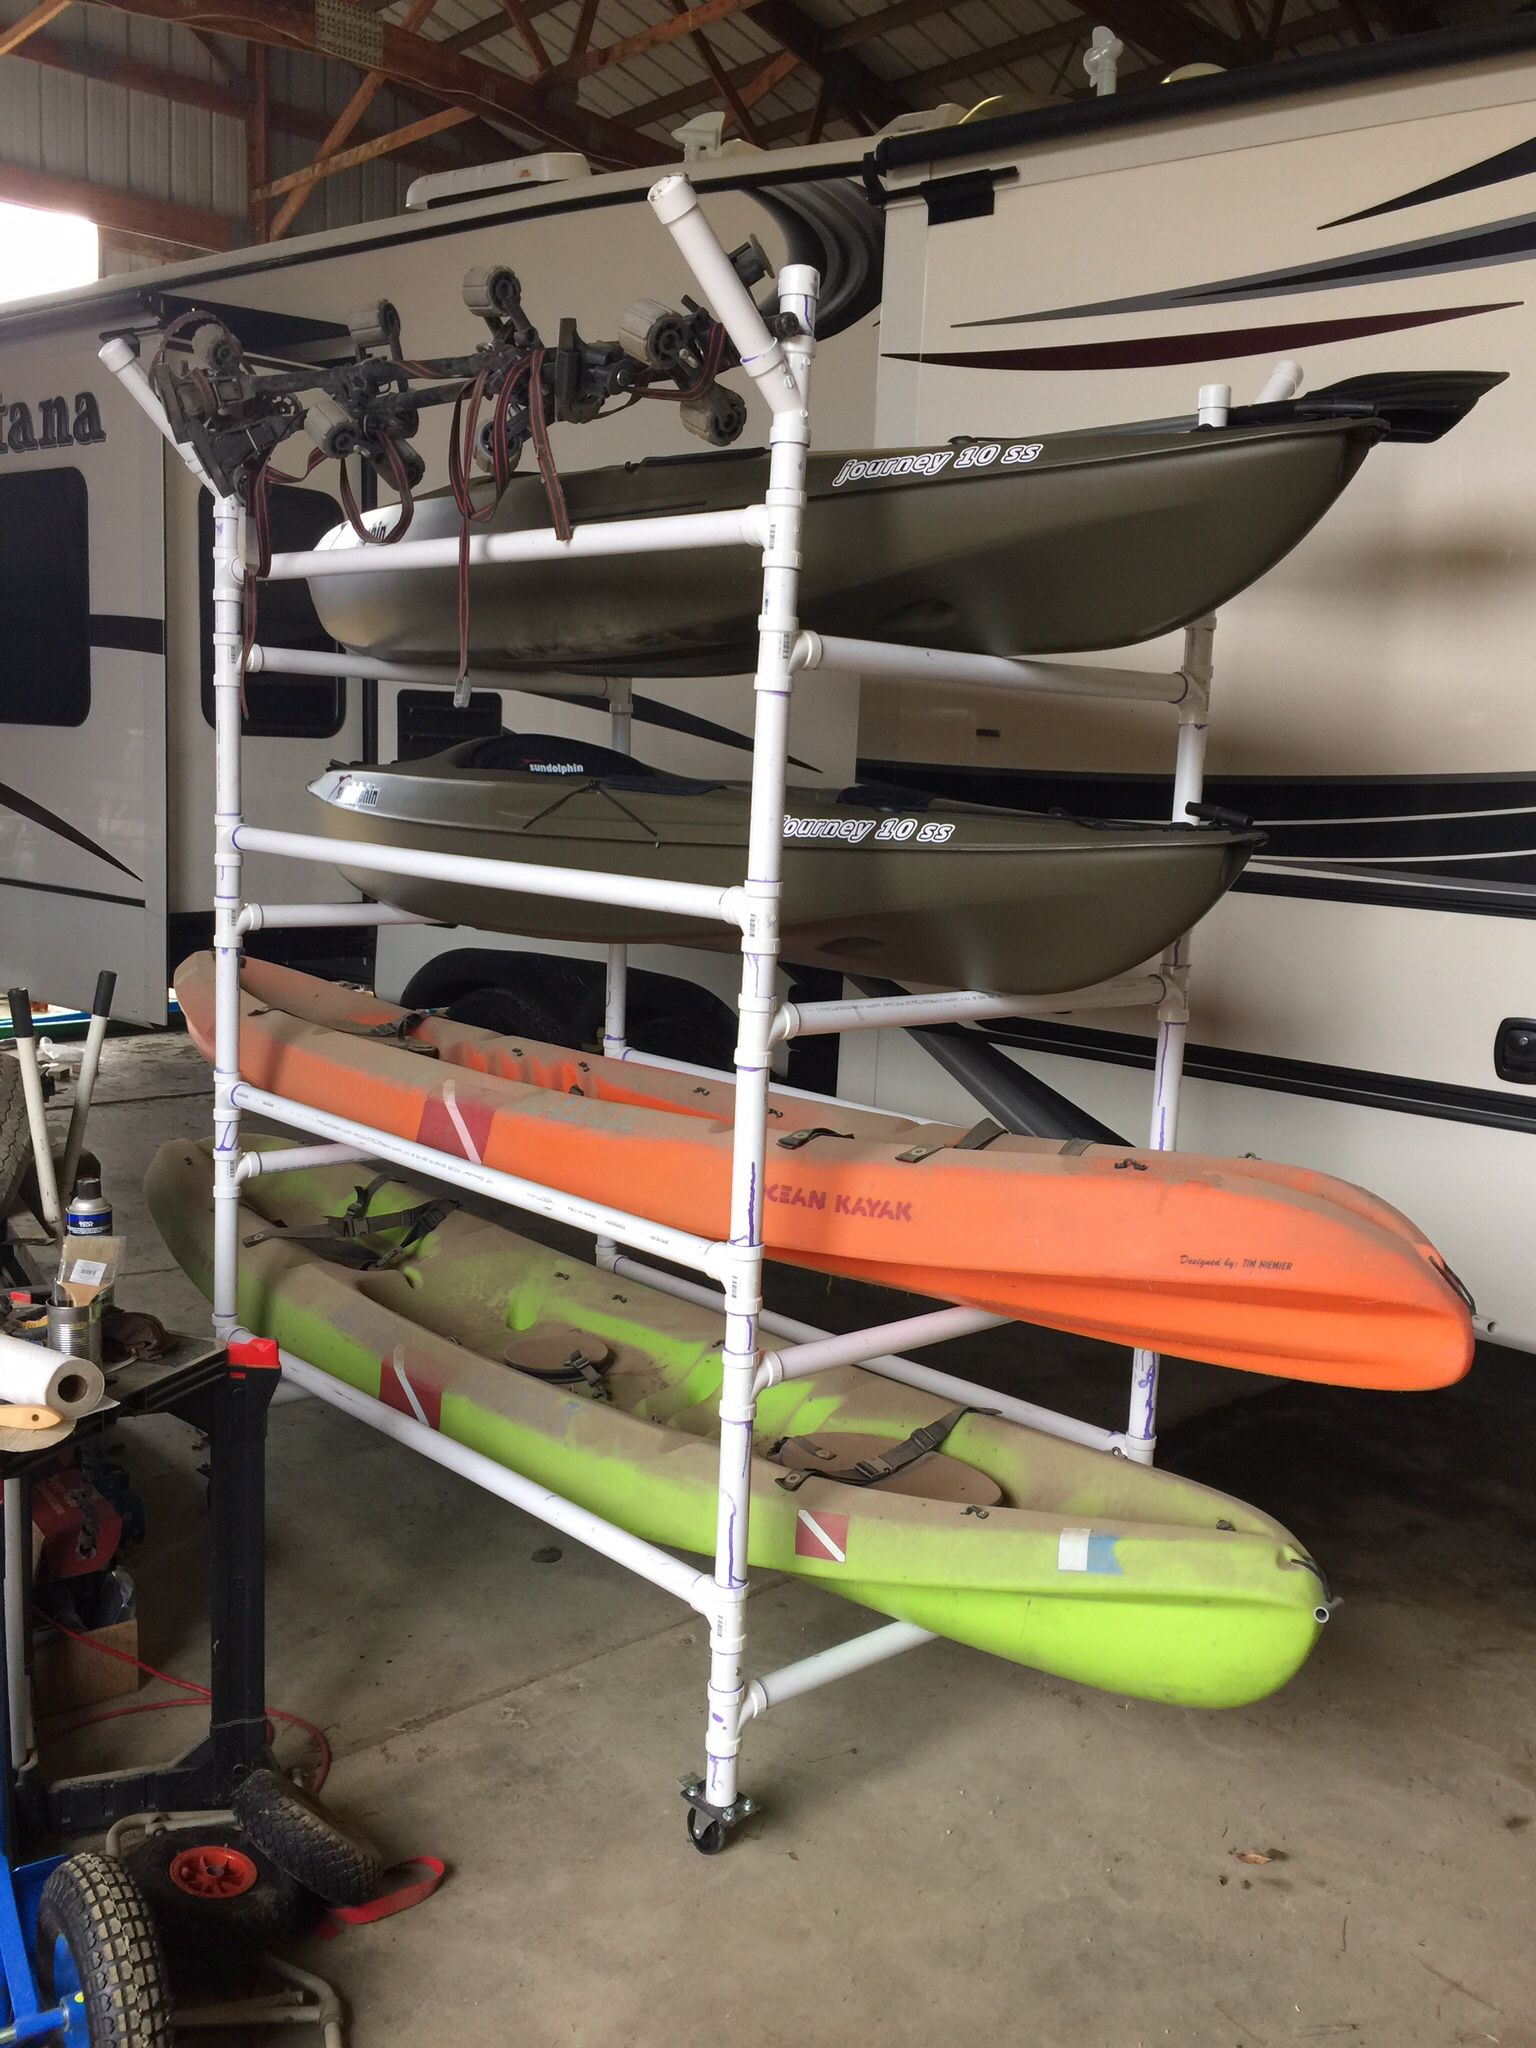 Homemade pvc kayak rack can store 4 kayakspaddles kayak car rack homemade pvc kayak rack can store 4 kayakspaddles kayak car rack de from 15 schedule 40 pvc 40wide x 5 long cost around 250 in 2015 prices has solutioingenieria Image collections